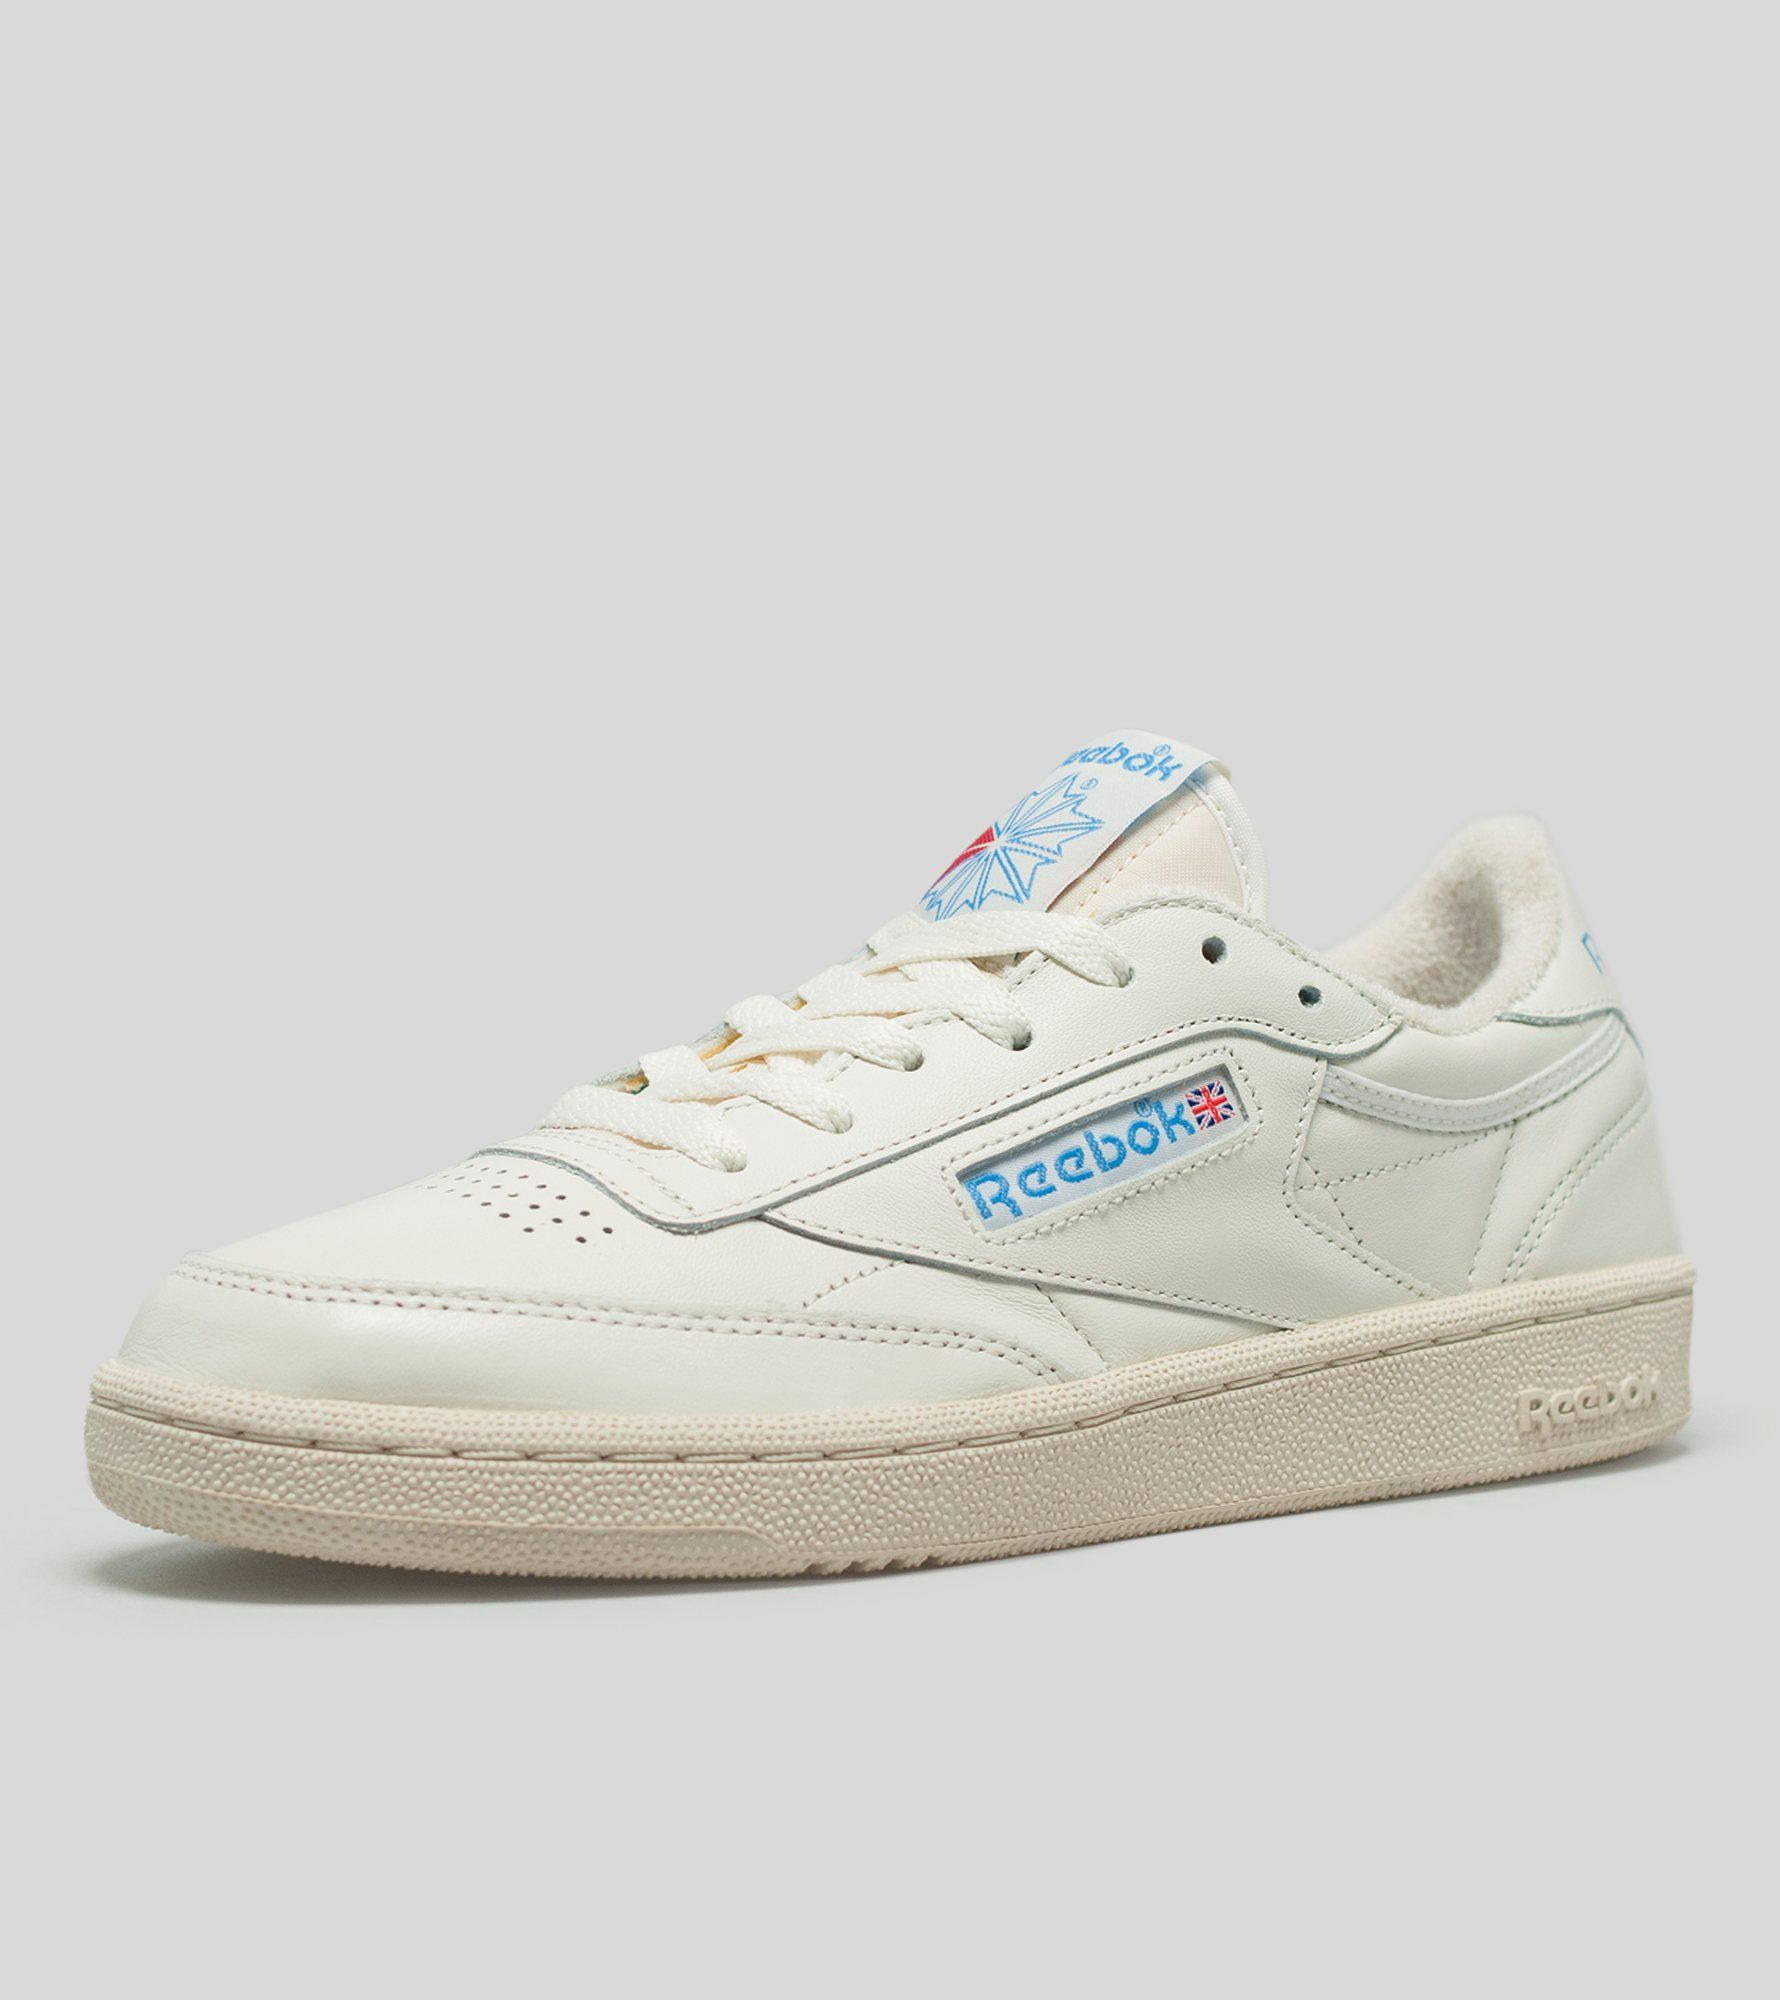 Reebok Club C 85 Vintage Women's - find out more on our site. Find the